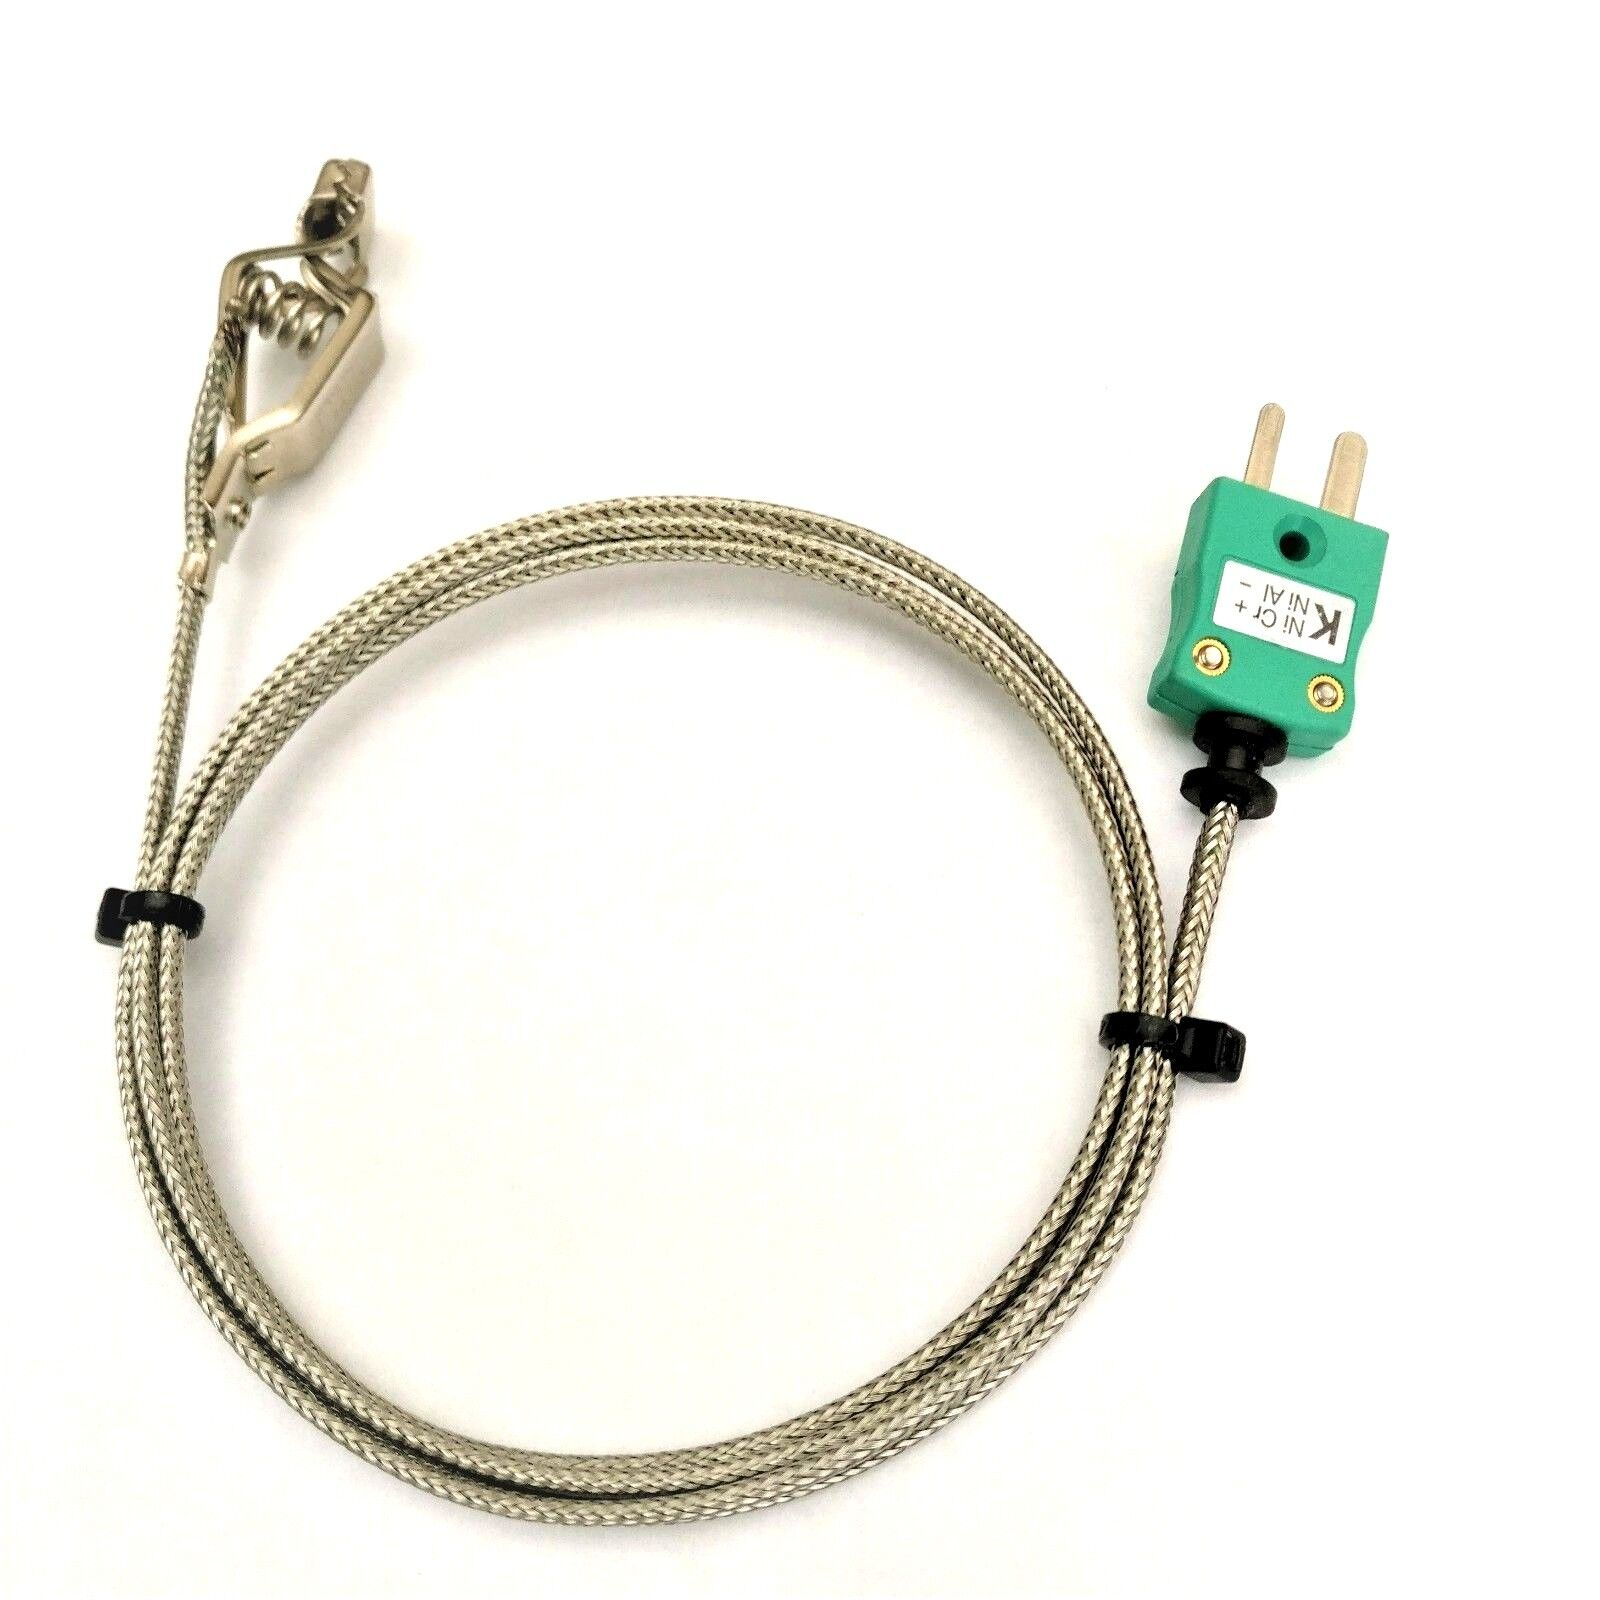 Type k wire air/gas sensor/probe with clip for ovens/fridges